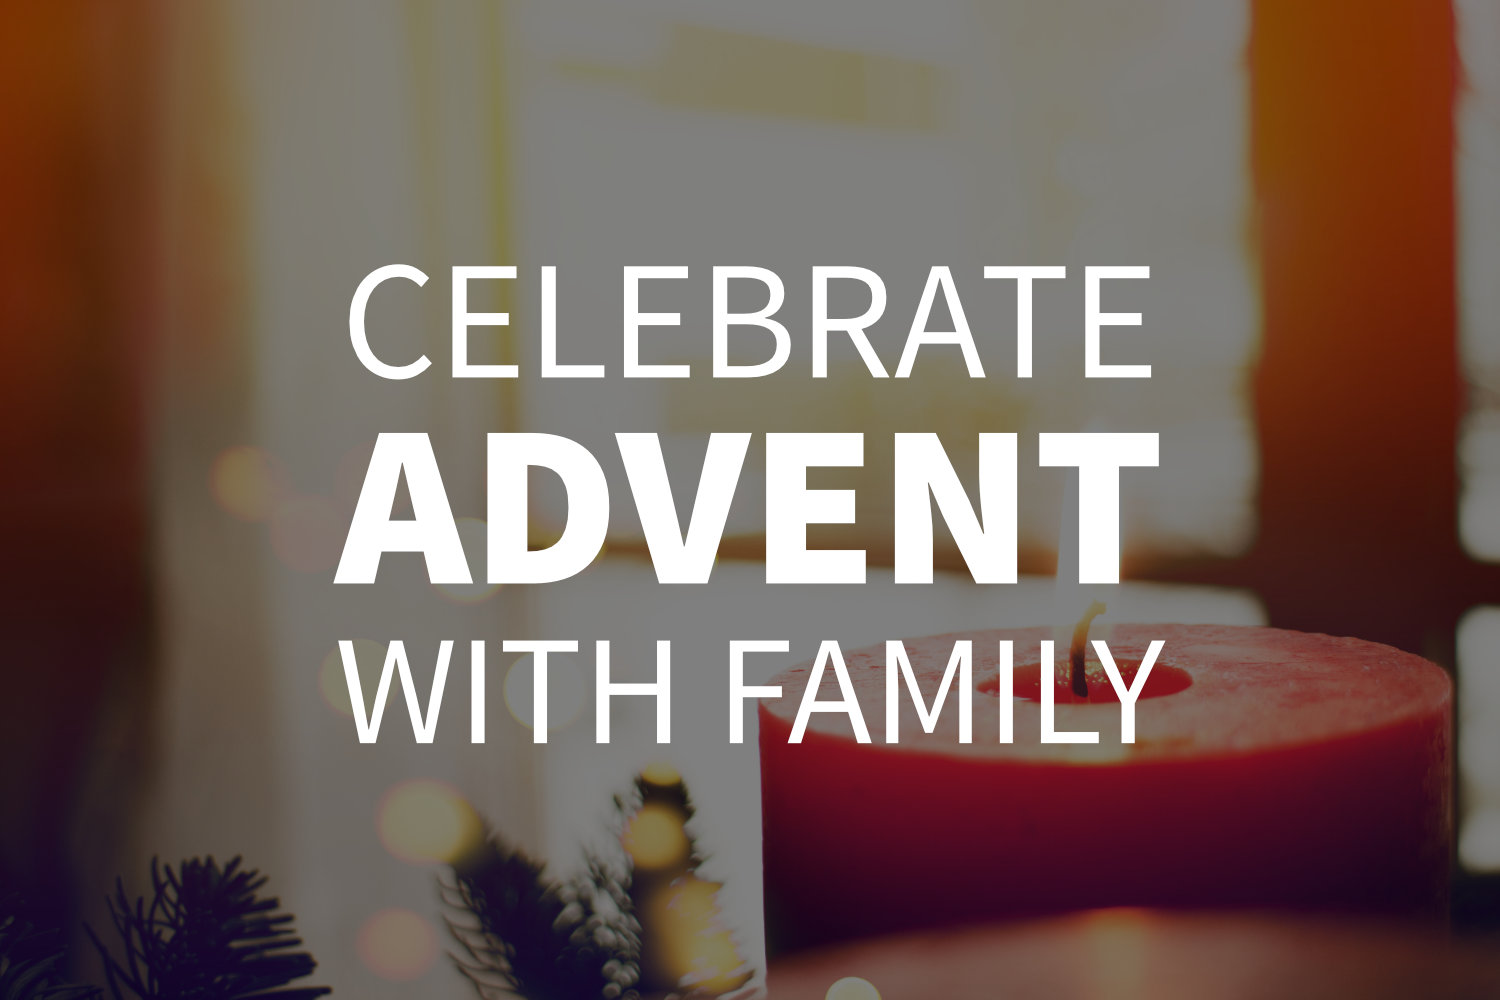 Celebrate Advent with Family